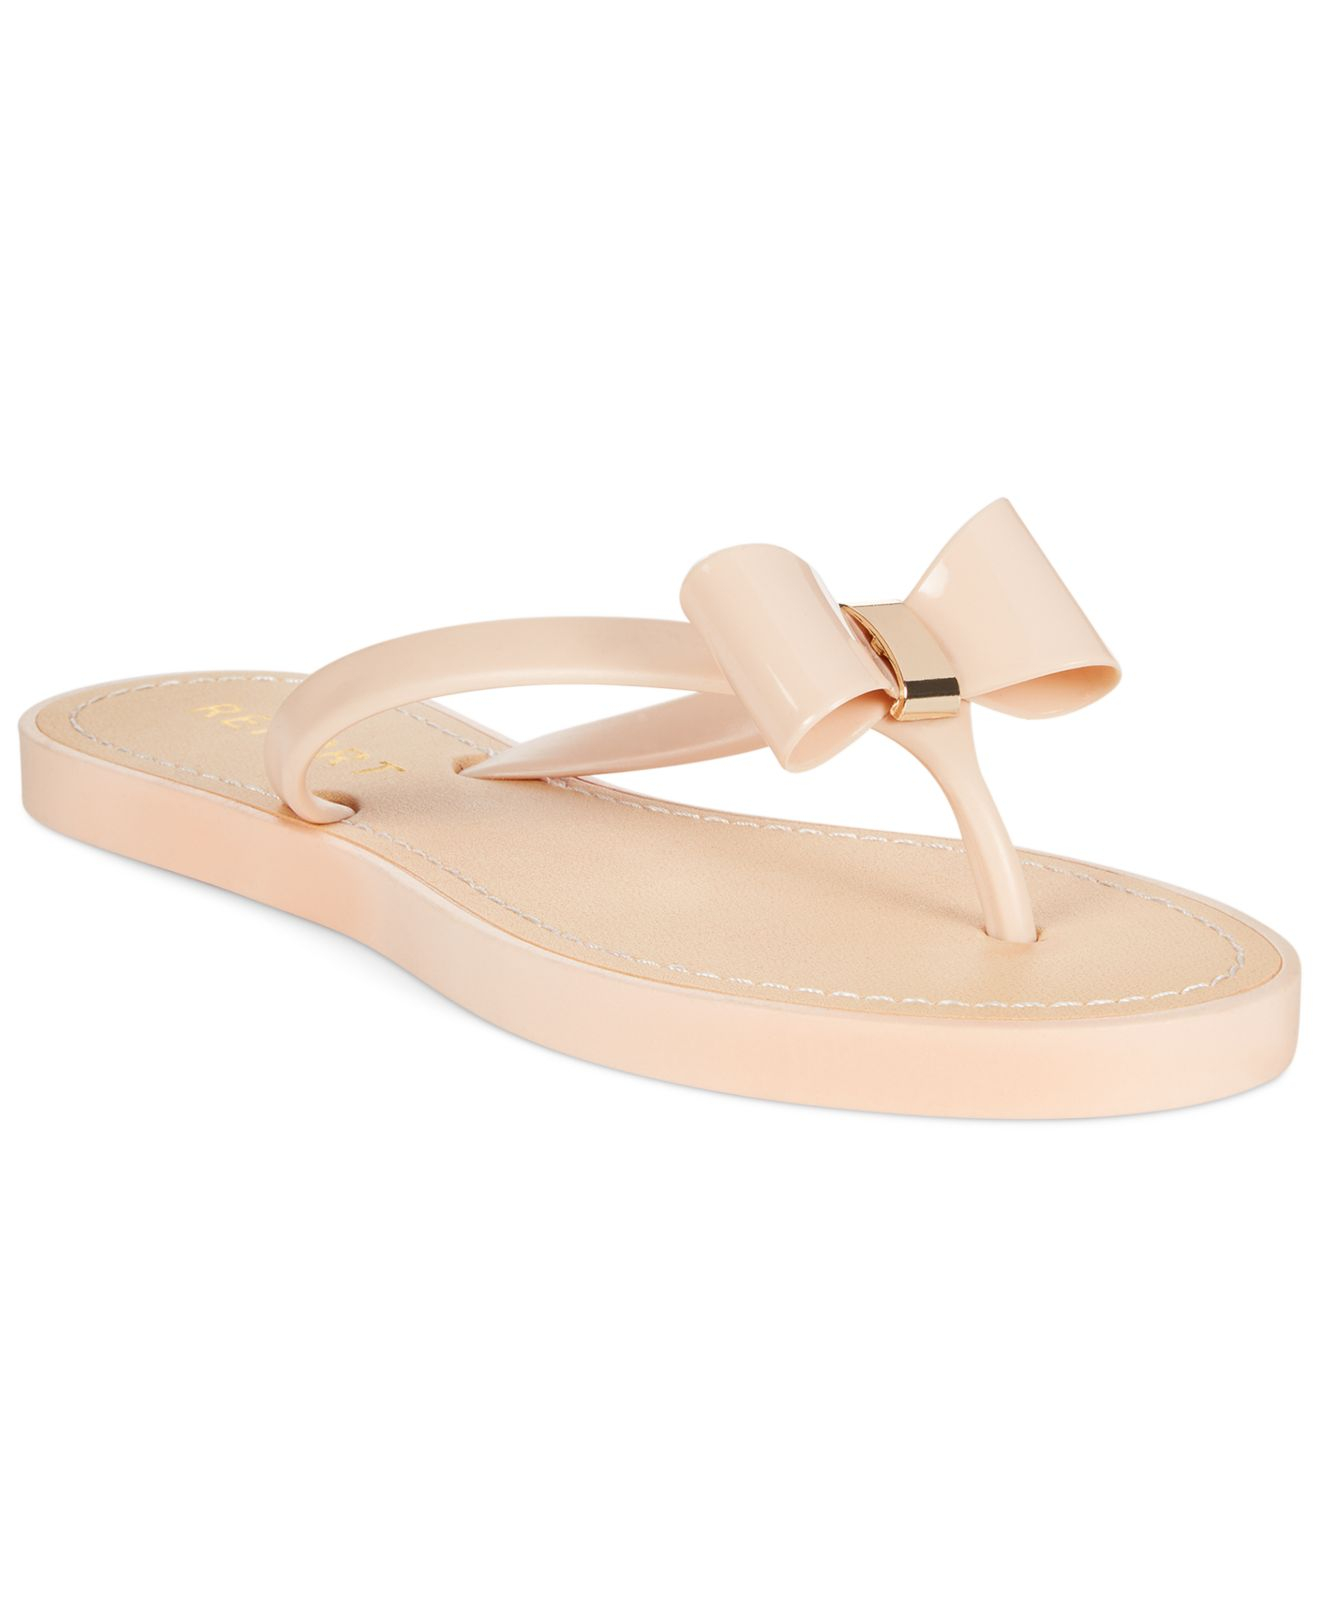 6b64bfb0a9ccec Lyst - Report Jenski Flat Bow Thong Sandals in Natural